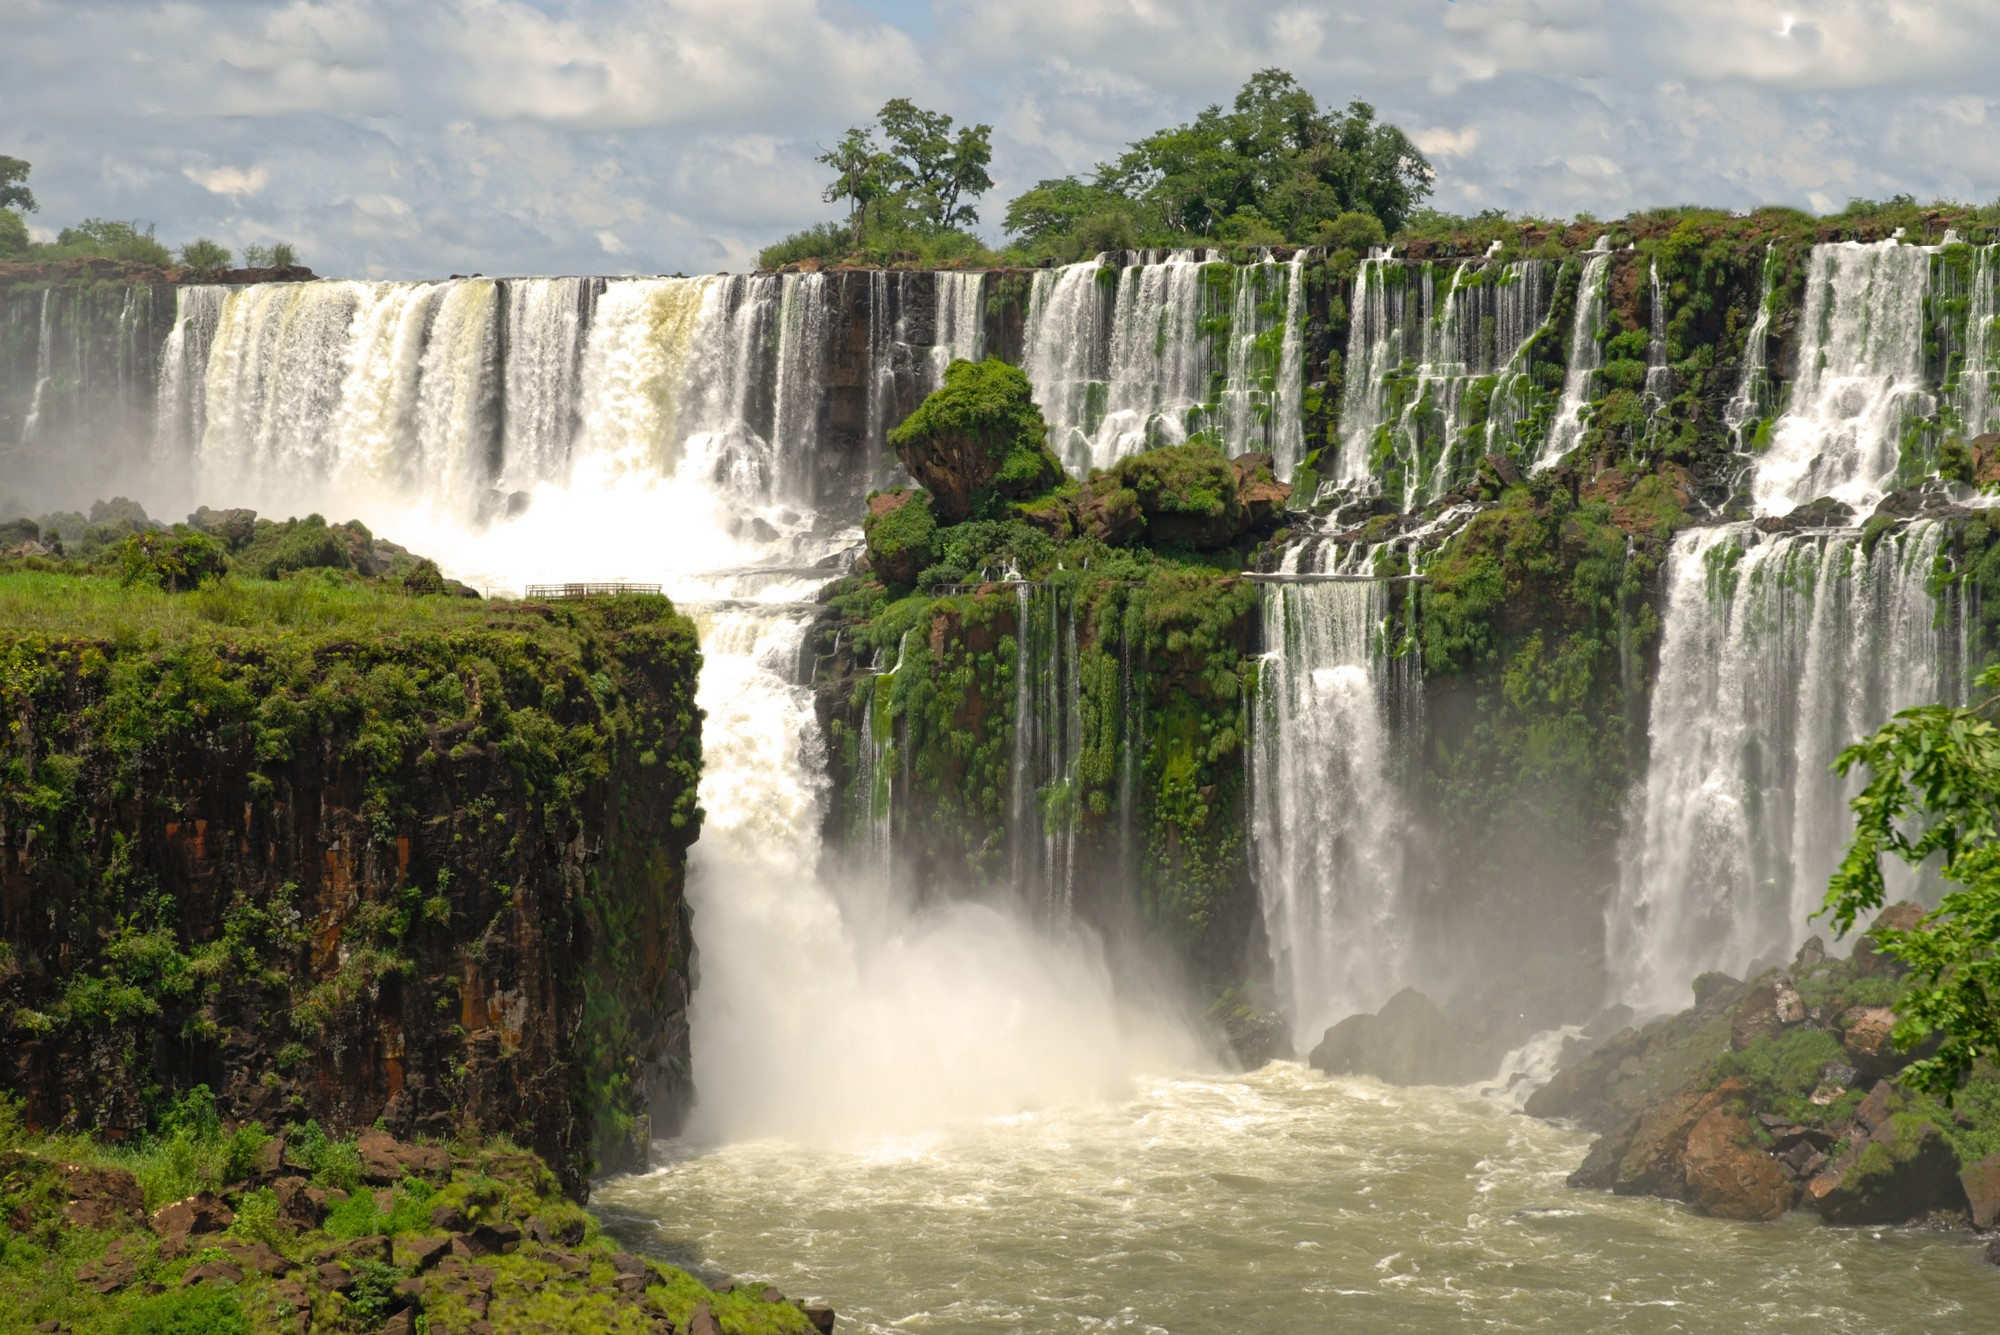 Cataratas-de-Iguazu-copia-2k